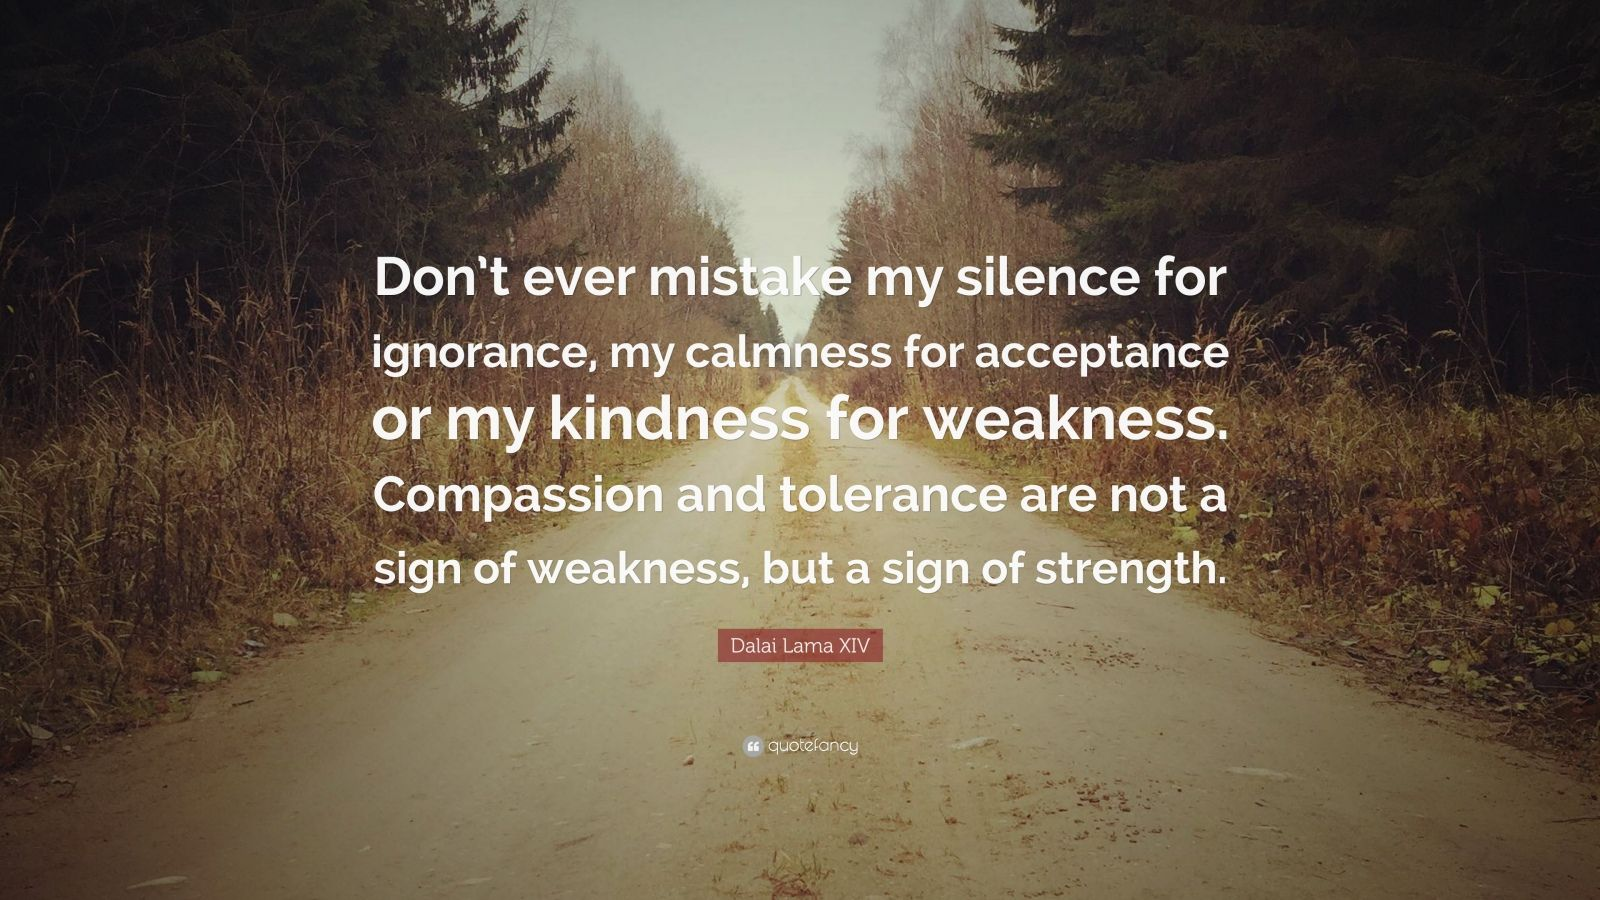 "Ignorance Quotes: ""Don't ever mistake my silence for ignorance, my calmness for acceptance or my kindness for weakness. Compassion and tolerance are not a sign of weakness, but a sign of strength."" — Dalai Lama XIV"